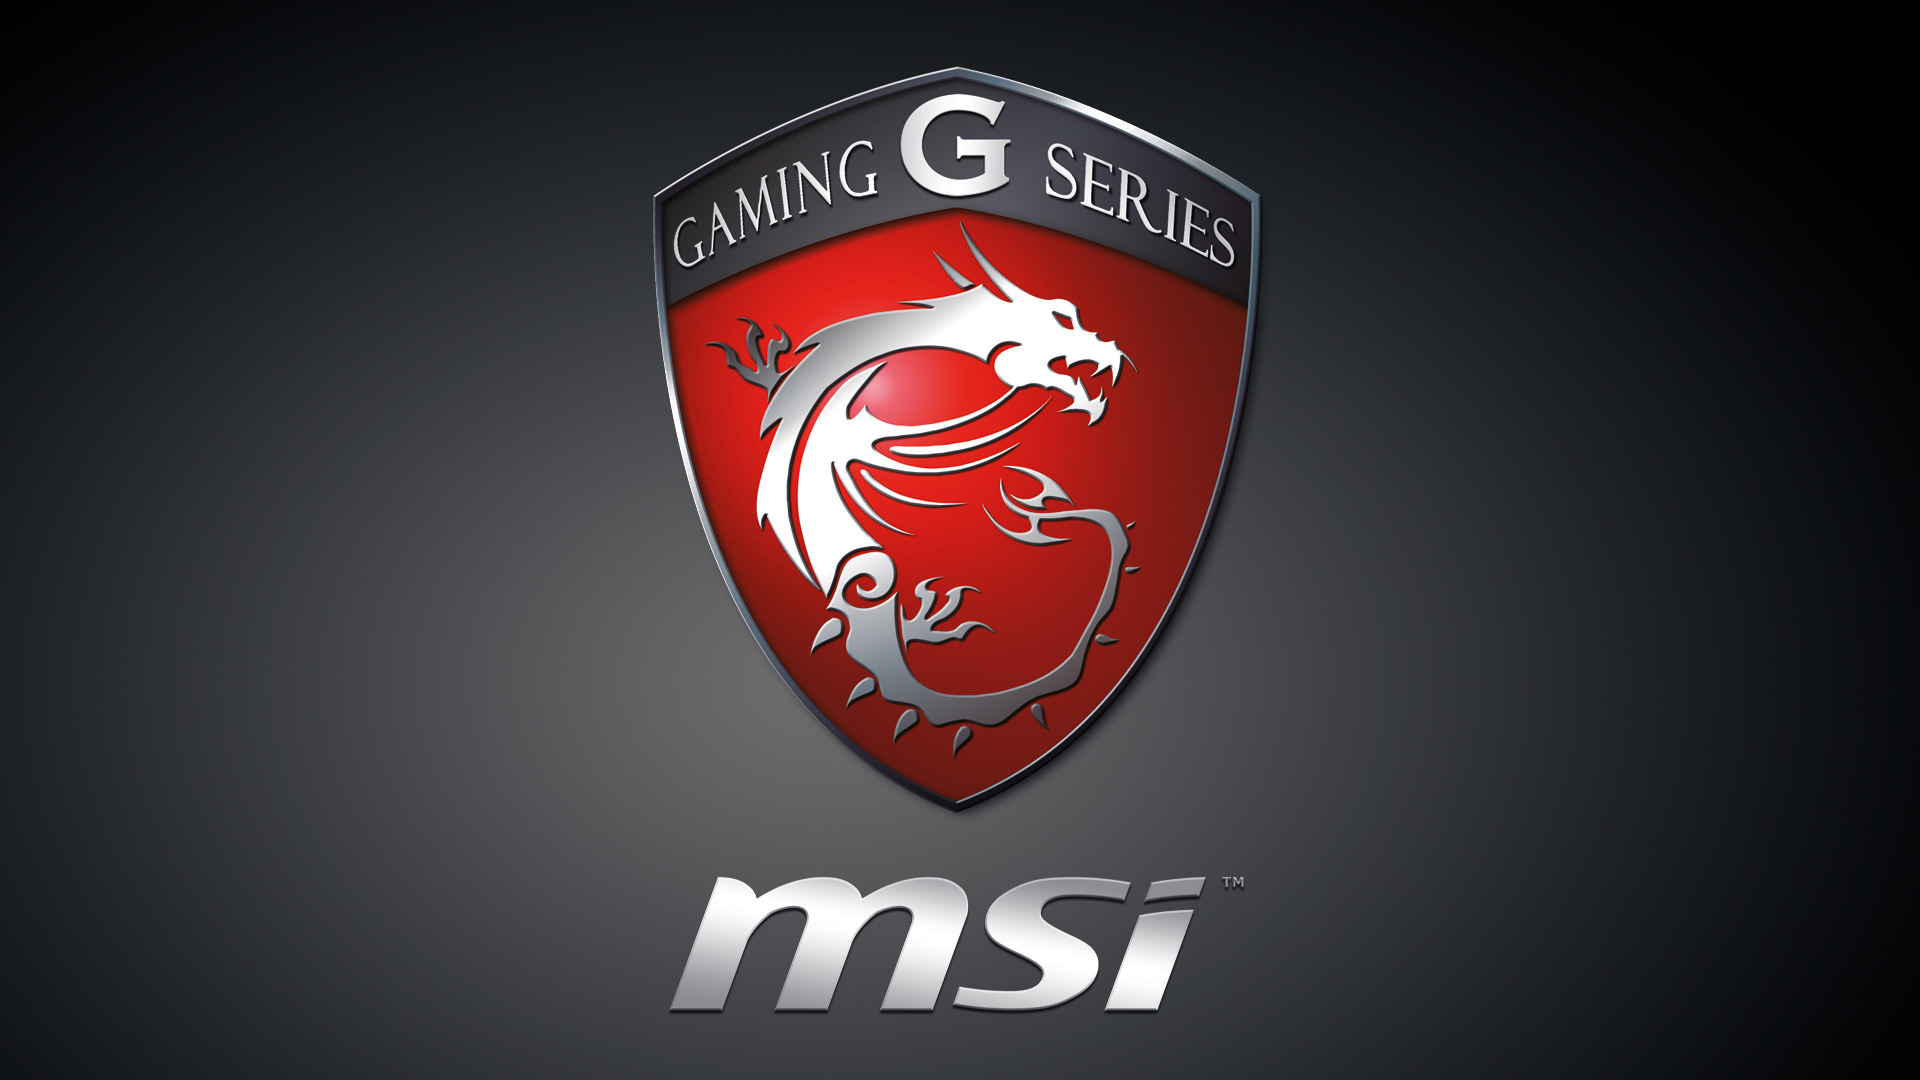 10 New Msi Gaming Series Wallpaper Full Hd 1920 1080 For: Productos MSI Gaming